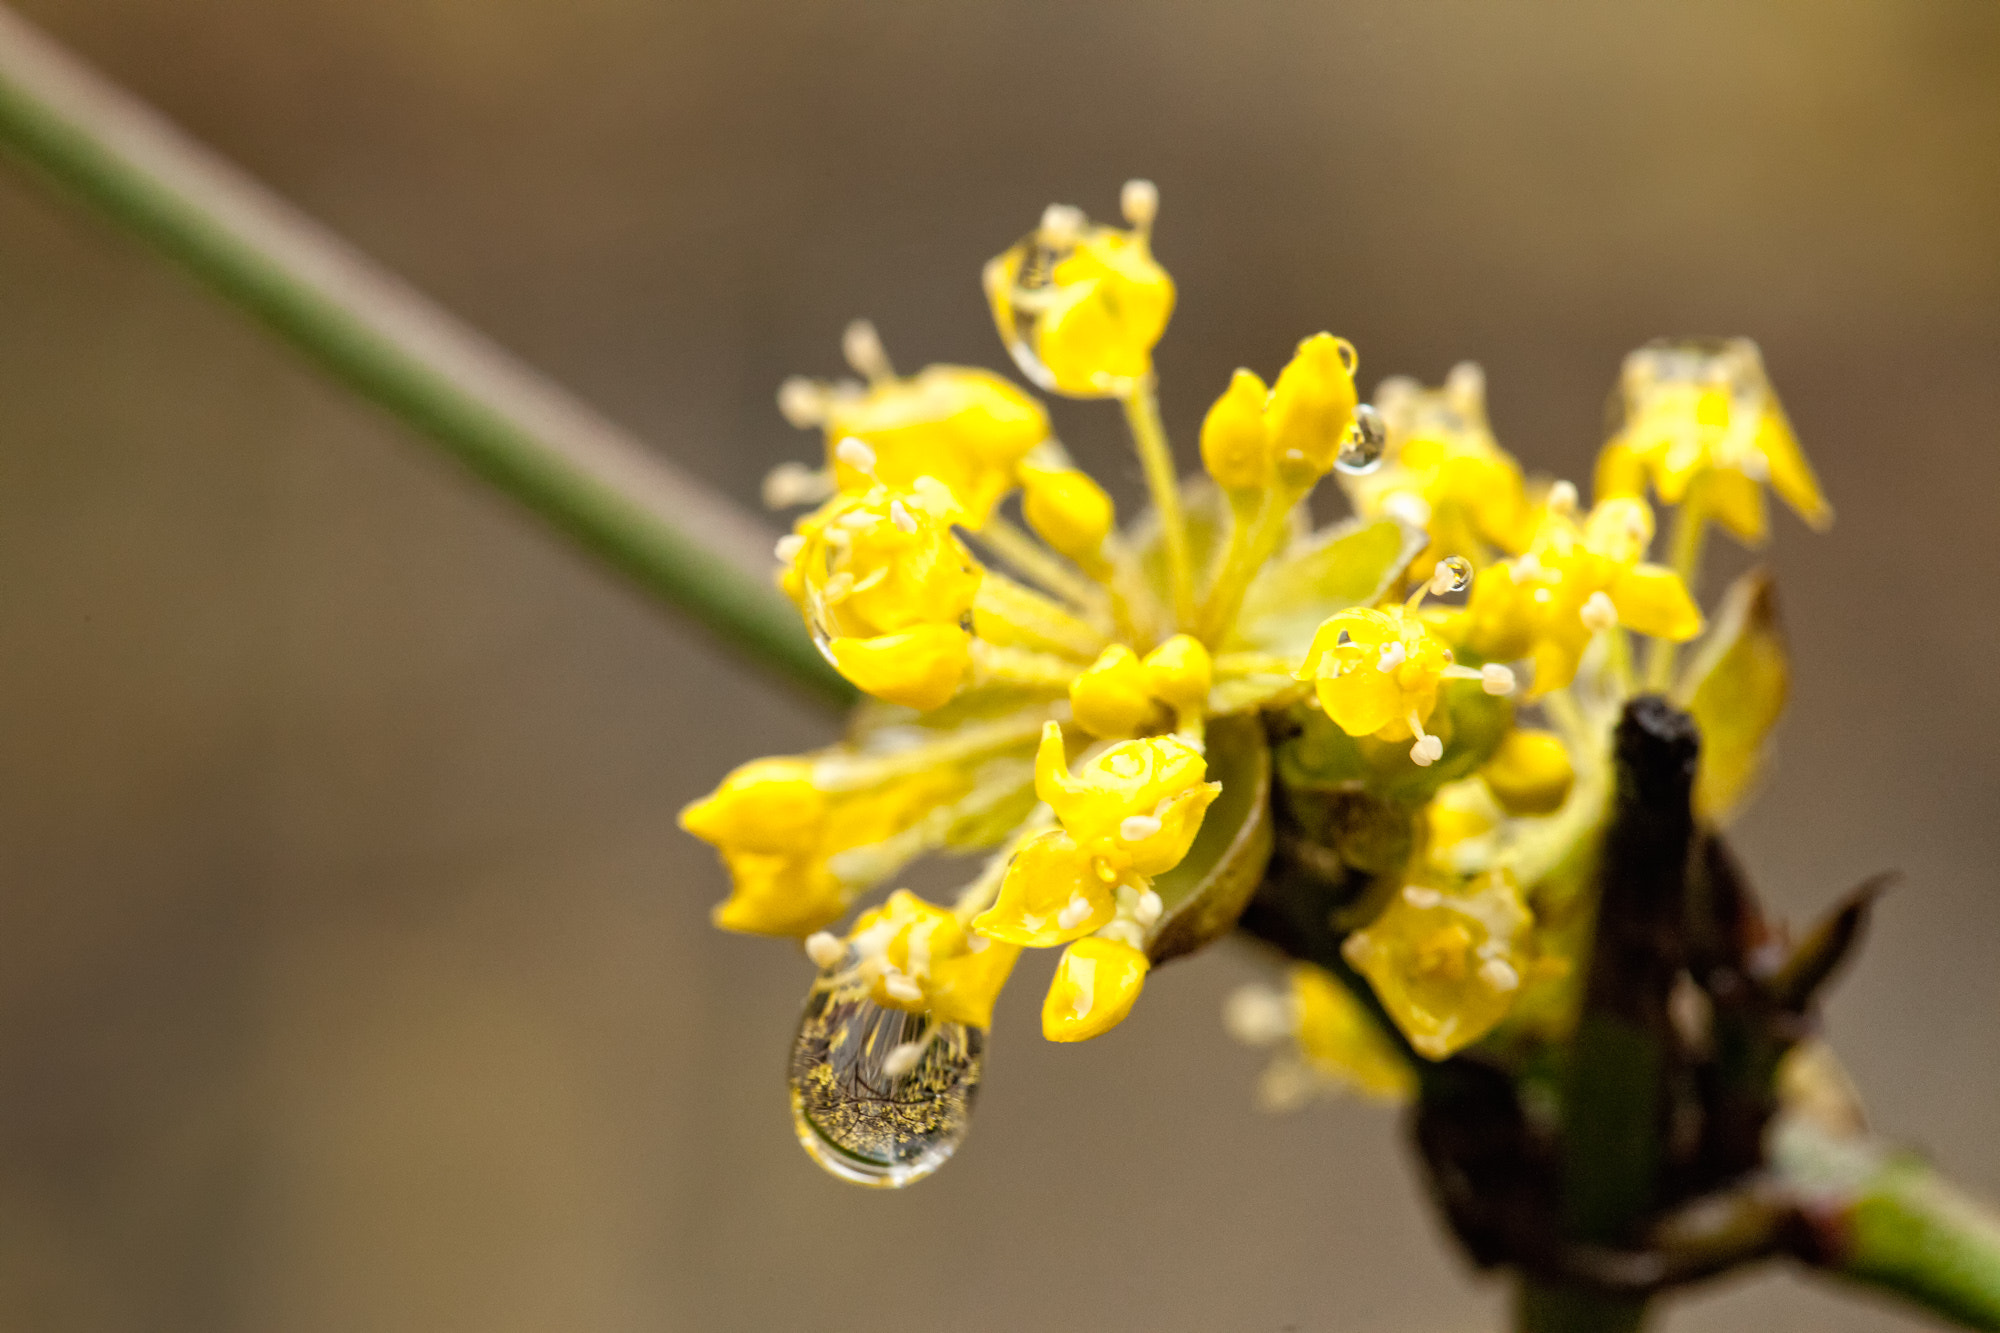 Photograph After the Rain by Joseph Calev on 500px